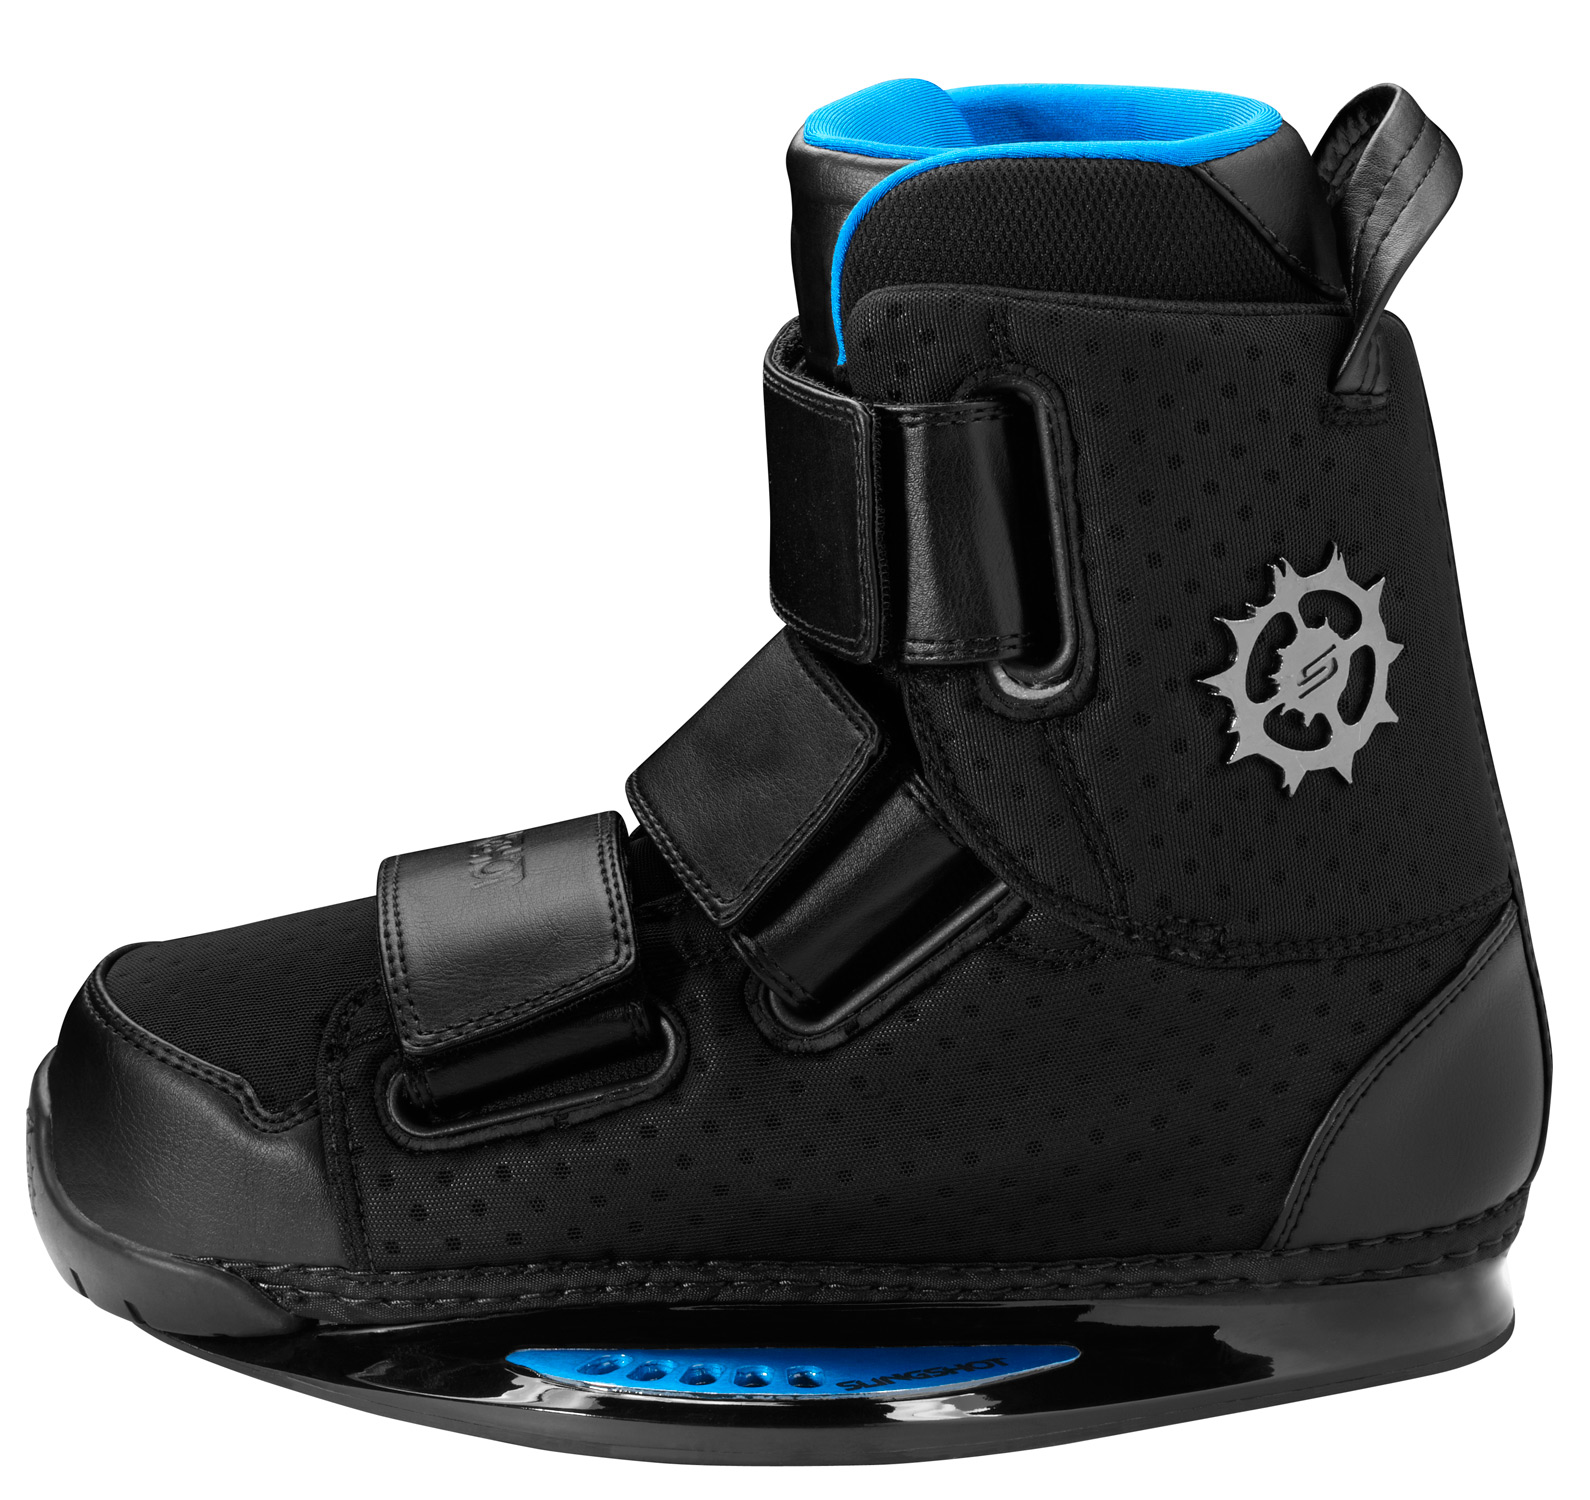 "Wake Designed on the same bottomless base system as our R.A.D.'s, our original 2012 Slingshot KTV boots feature an ultra low profile that offers the ultimate direct foot to board feel. To simplify entry and exit, we've incorporated non-removable, preformed, heat formable liners with our custom designed hybrid tongue. Combined with the new Trifecta Velcro Strap System, this new design gives riders multiple flex options to fit virtually any riding style, and continues to provide an unmatched custom fit. Loosen the straps for extra flex on those stylish grabs, or crank them down for supreme board control, and get your shred on!Key Features of the Slingshot KTV Wakeboard Bindings: Bottomless Base System: much lower profile for ultimate direct foot to board feel Trifecta Straps: customizable Velcro closer system featuring three replaceable straps Centered Flex: articulated mobility with medium flex Double lasted construction: precision liner-in-boot fit Low profile lasting: lasted with Slingshot's custom low profile lasts to eliminate excess material for a better fit and lighter weight NEW Hybrid Tongue: preformed, built in tongue that combines the comfort and fit of our removable liners with a non-removable liner for easier entry and exit when a removable liner is unnecessary Heat Formable Liner: unmatched custom fit Built In J-Bars: eliminates heel lift and adds ankle stability Triple Density Shock System: New and improved three layer shock absorption system New Shox Bed: memory foam footbed that forms to any foot shape every time you step in, and eliminates foot and knee pain New Ortho Koosh: custom orthotic shock foam that cradles the foot to provide maximum stability and board control New G-Sole: using energy displacement, the dura-gel liner base supports and acts as a ""hydraulic"" shock absorber No PVC: we use the highest quality materials available to eliminate solvents which are harmful to our environment and health Slingshot Tested And Approved: proven quality and performance - $318.95"